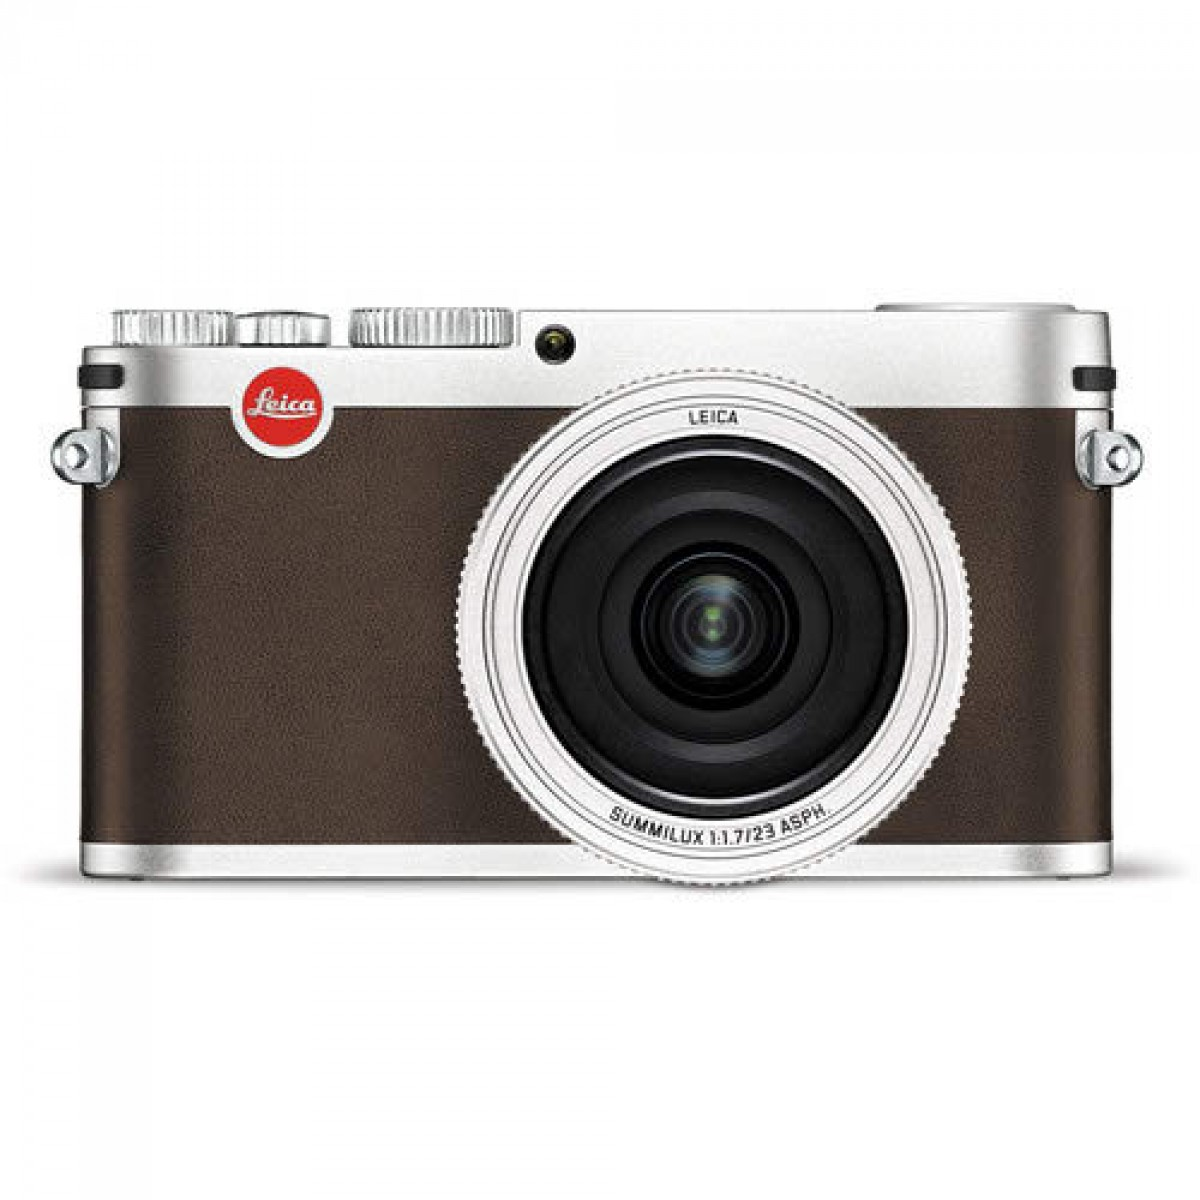 Leica Digital Compact Camera Silver (Typ-113) with Summilux 23mm f/1 7 ASPH  Lens